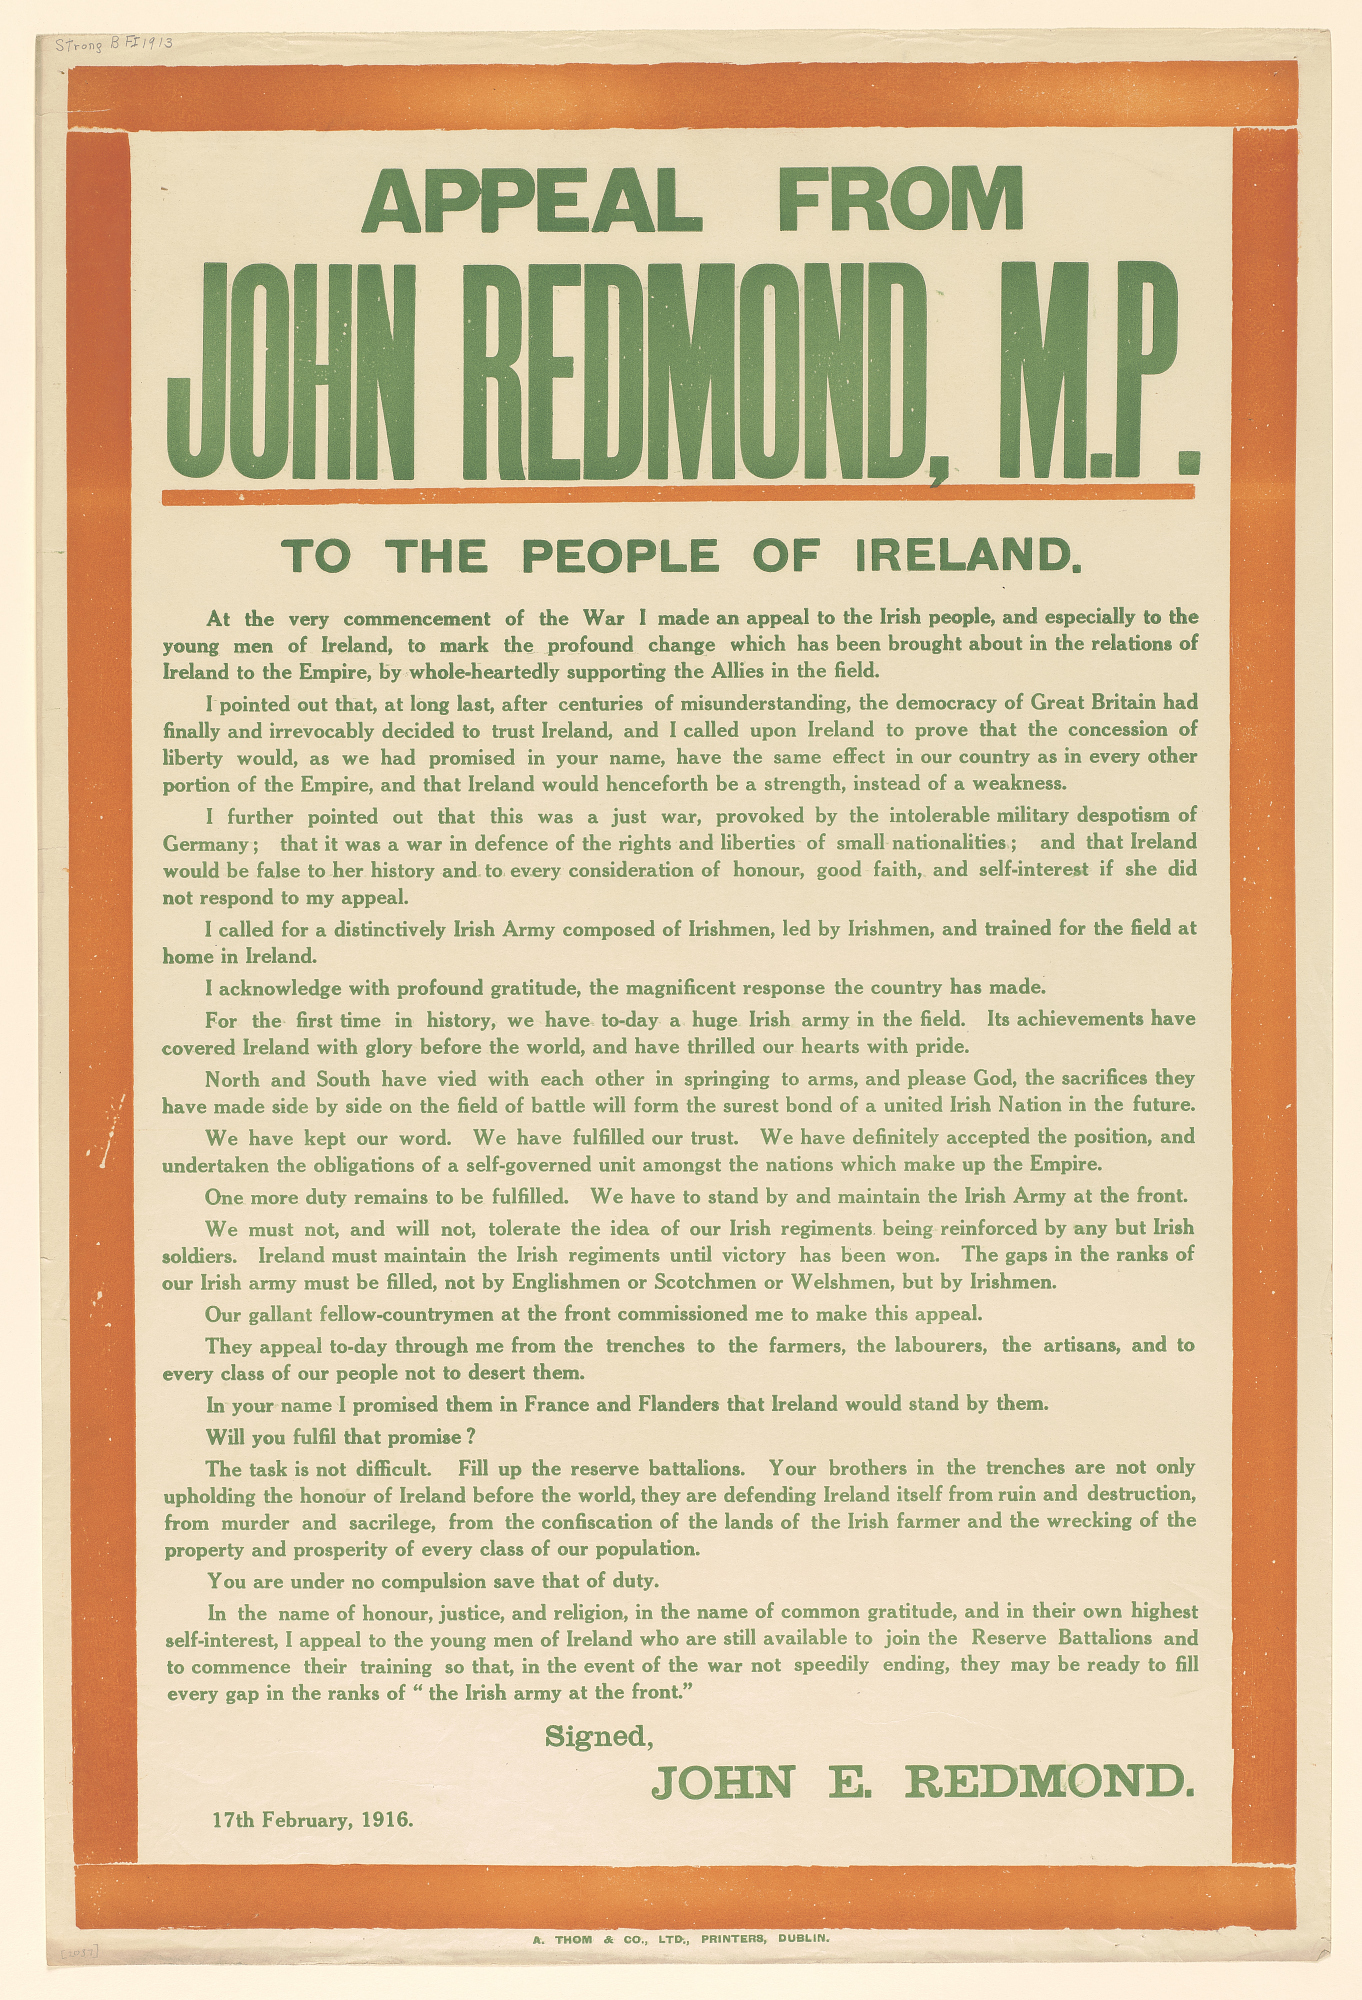 Appeal From John Redmond, M.P. To the People of Ireland ... I Appeal to the Young Men of Ireland Who Are Still Available to Join the Reserve Battalions...